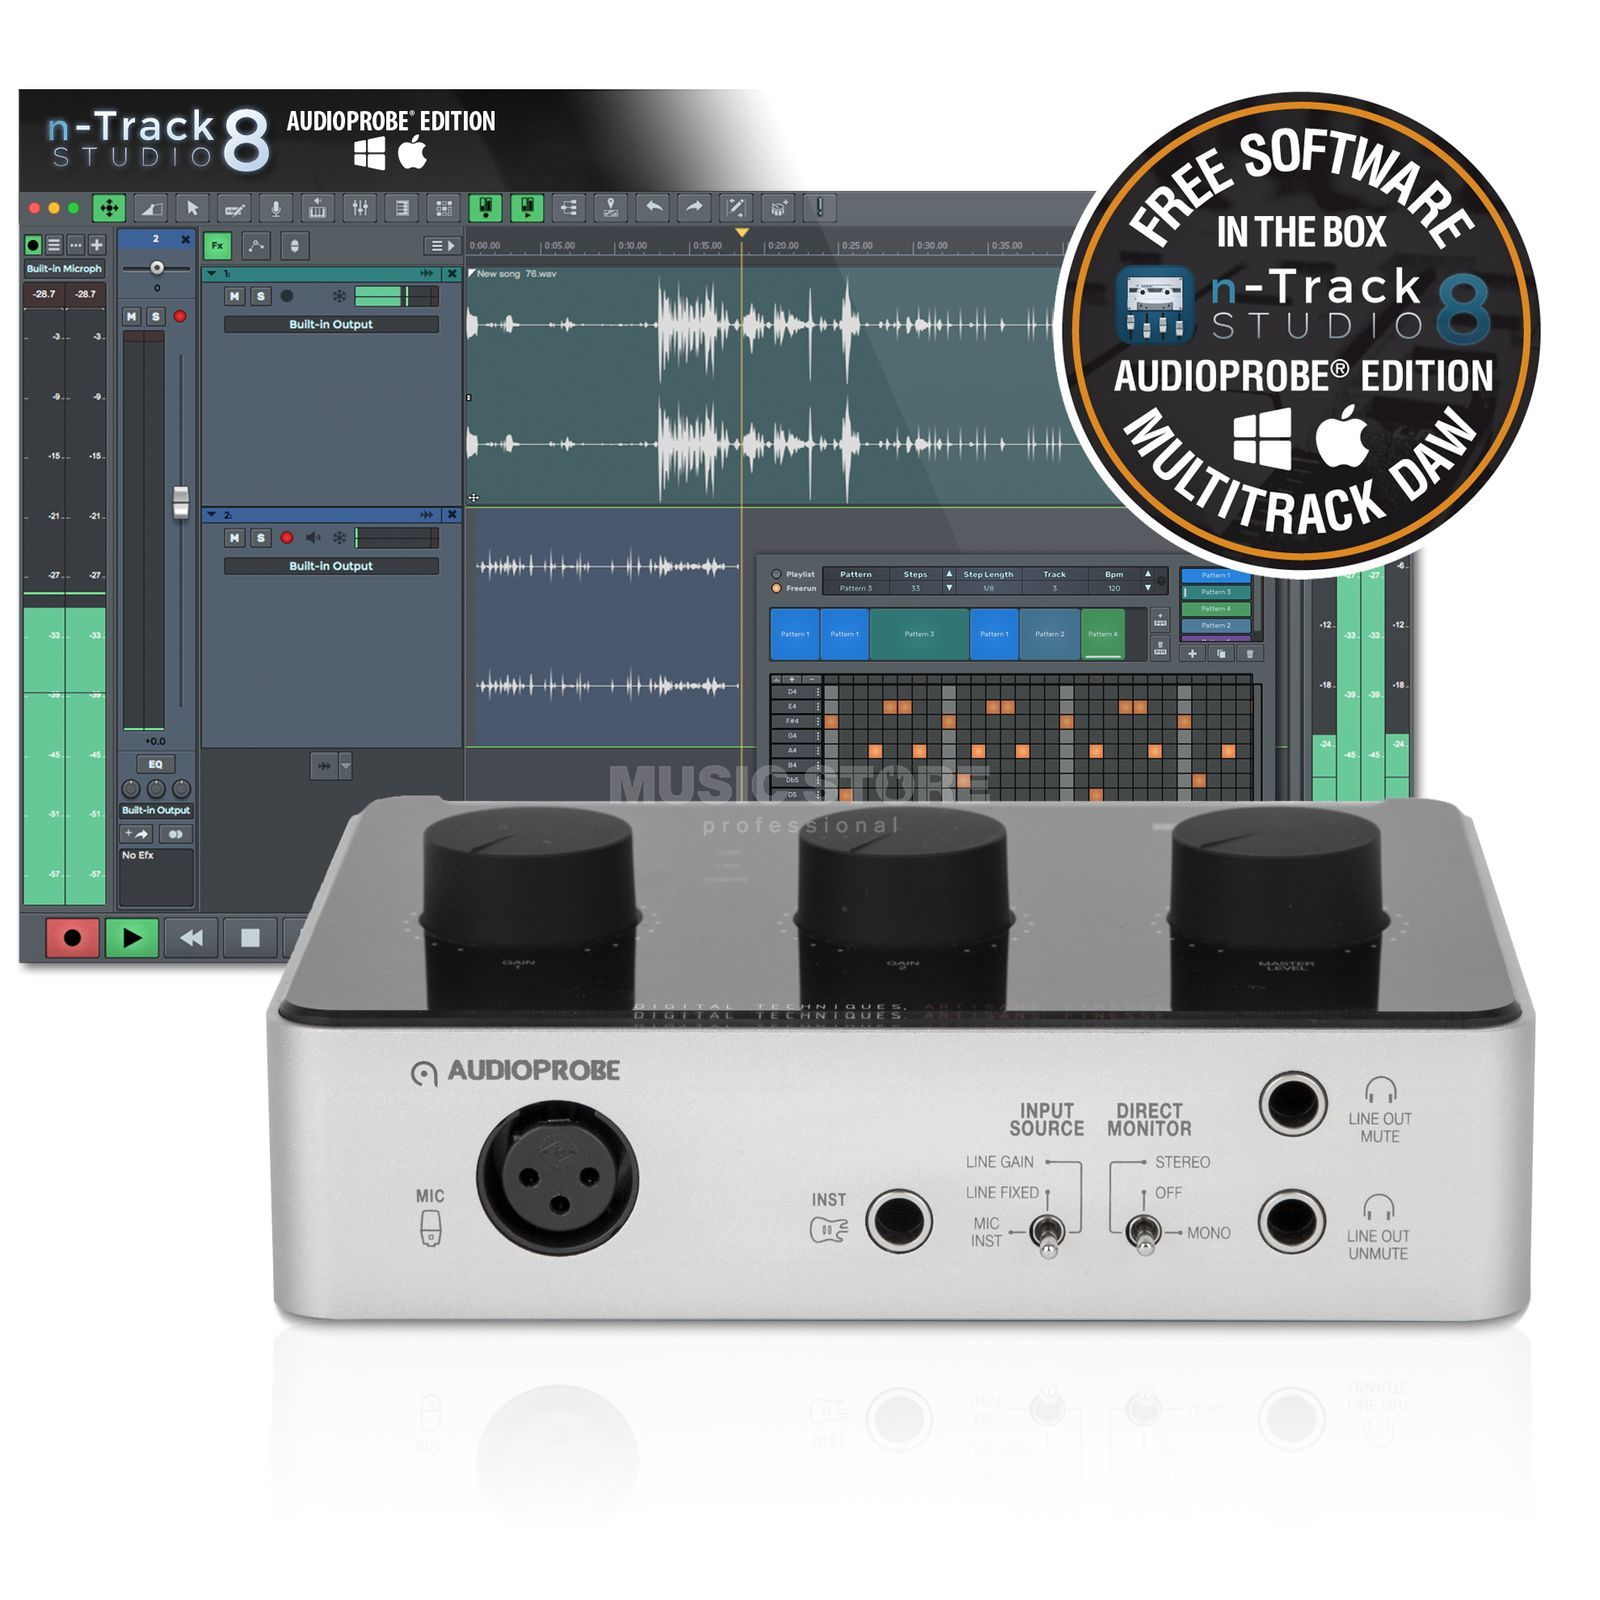 Audioprobe CUE 110 n-Track Bundle USB-Audiointerface Produktbild